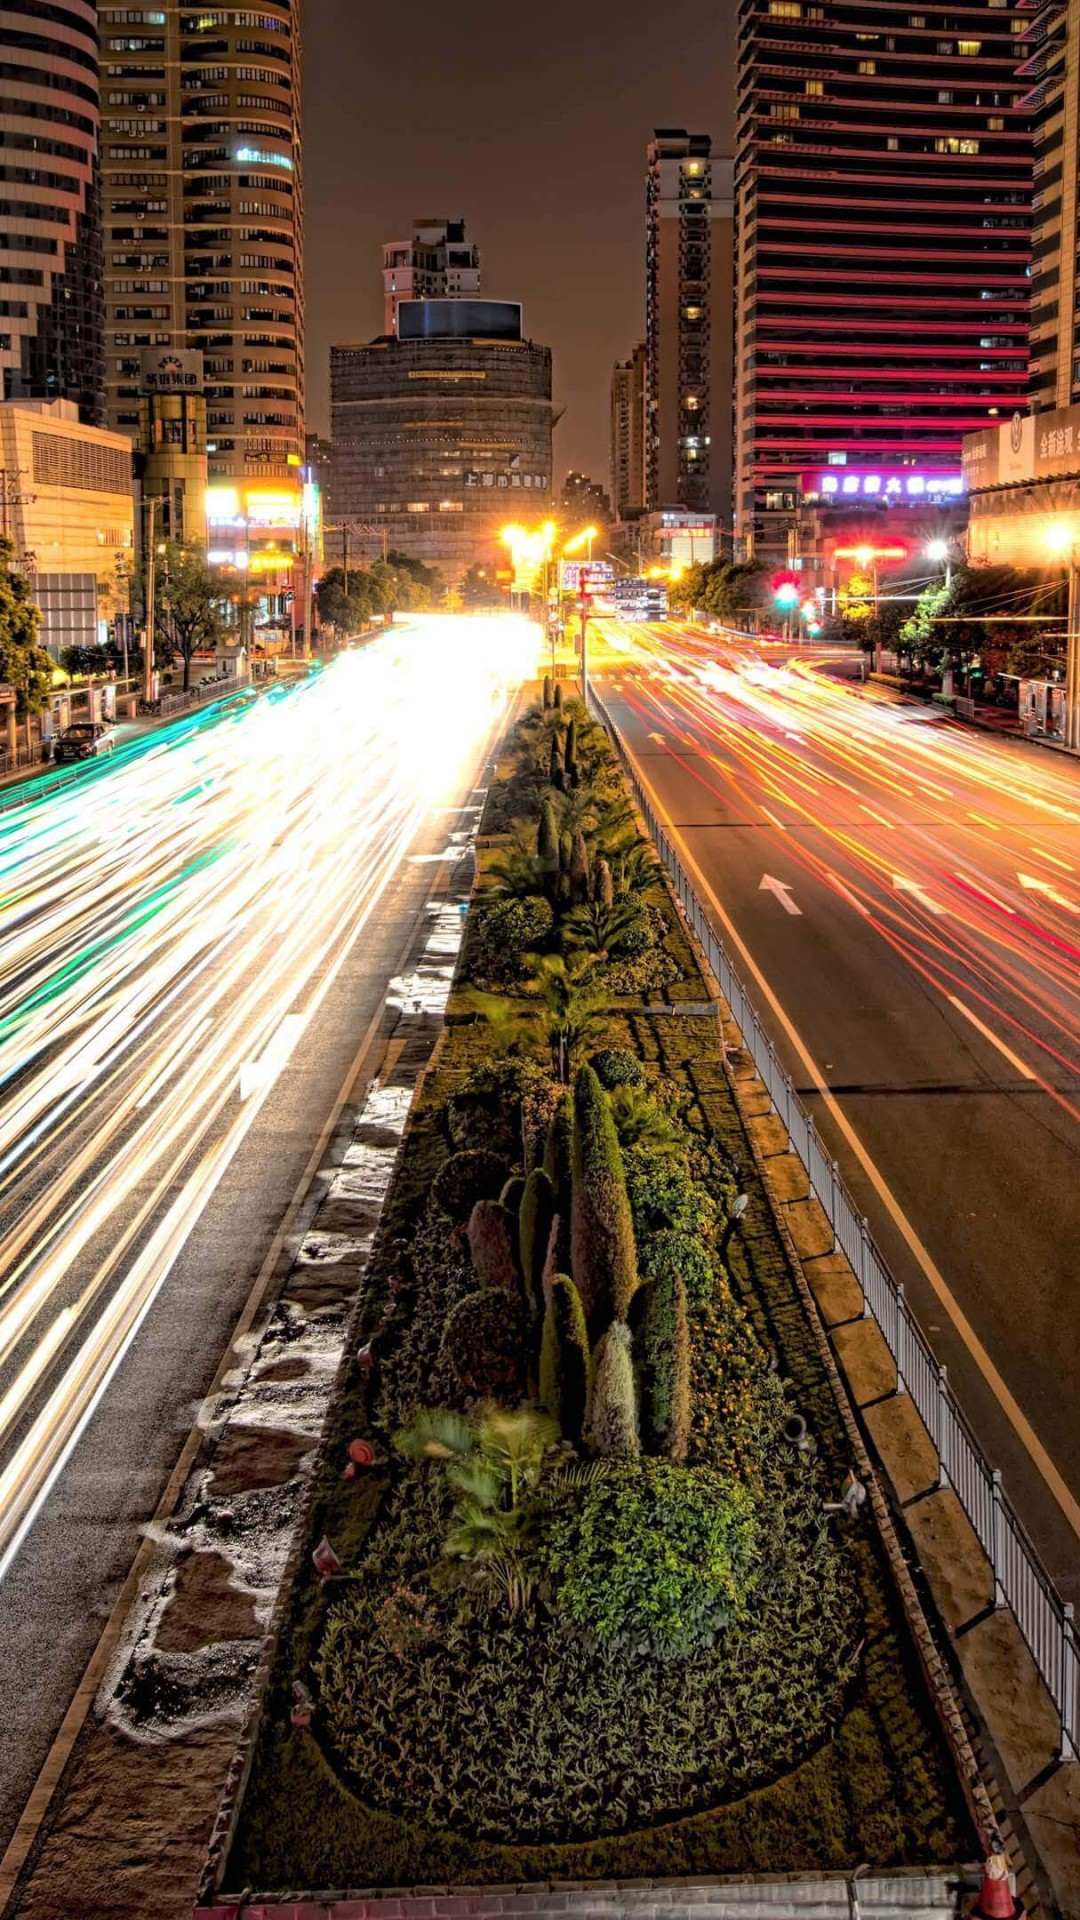 Busy Road in Shanghai at Night Wallpaper for SONY Xperia Z2